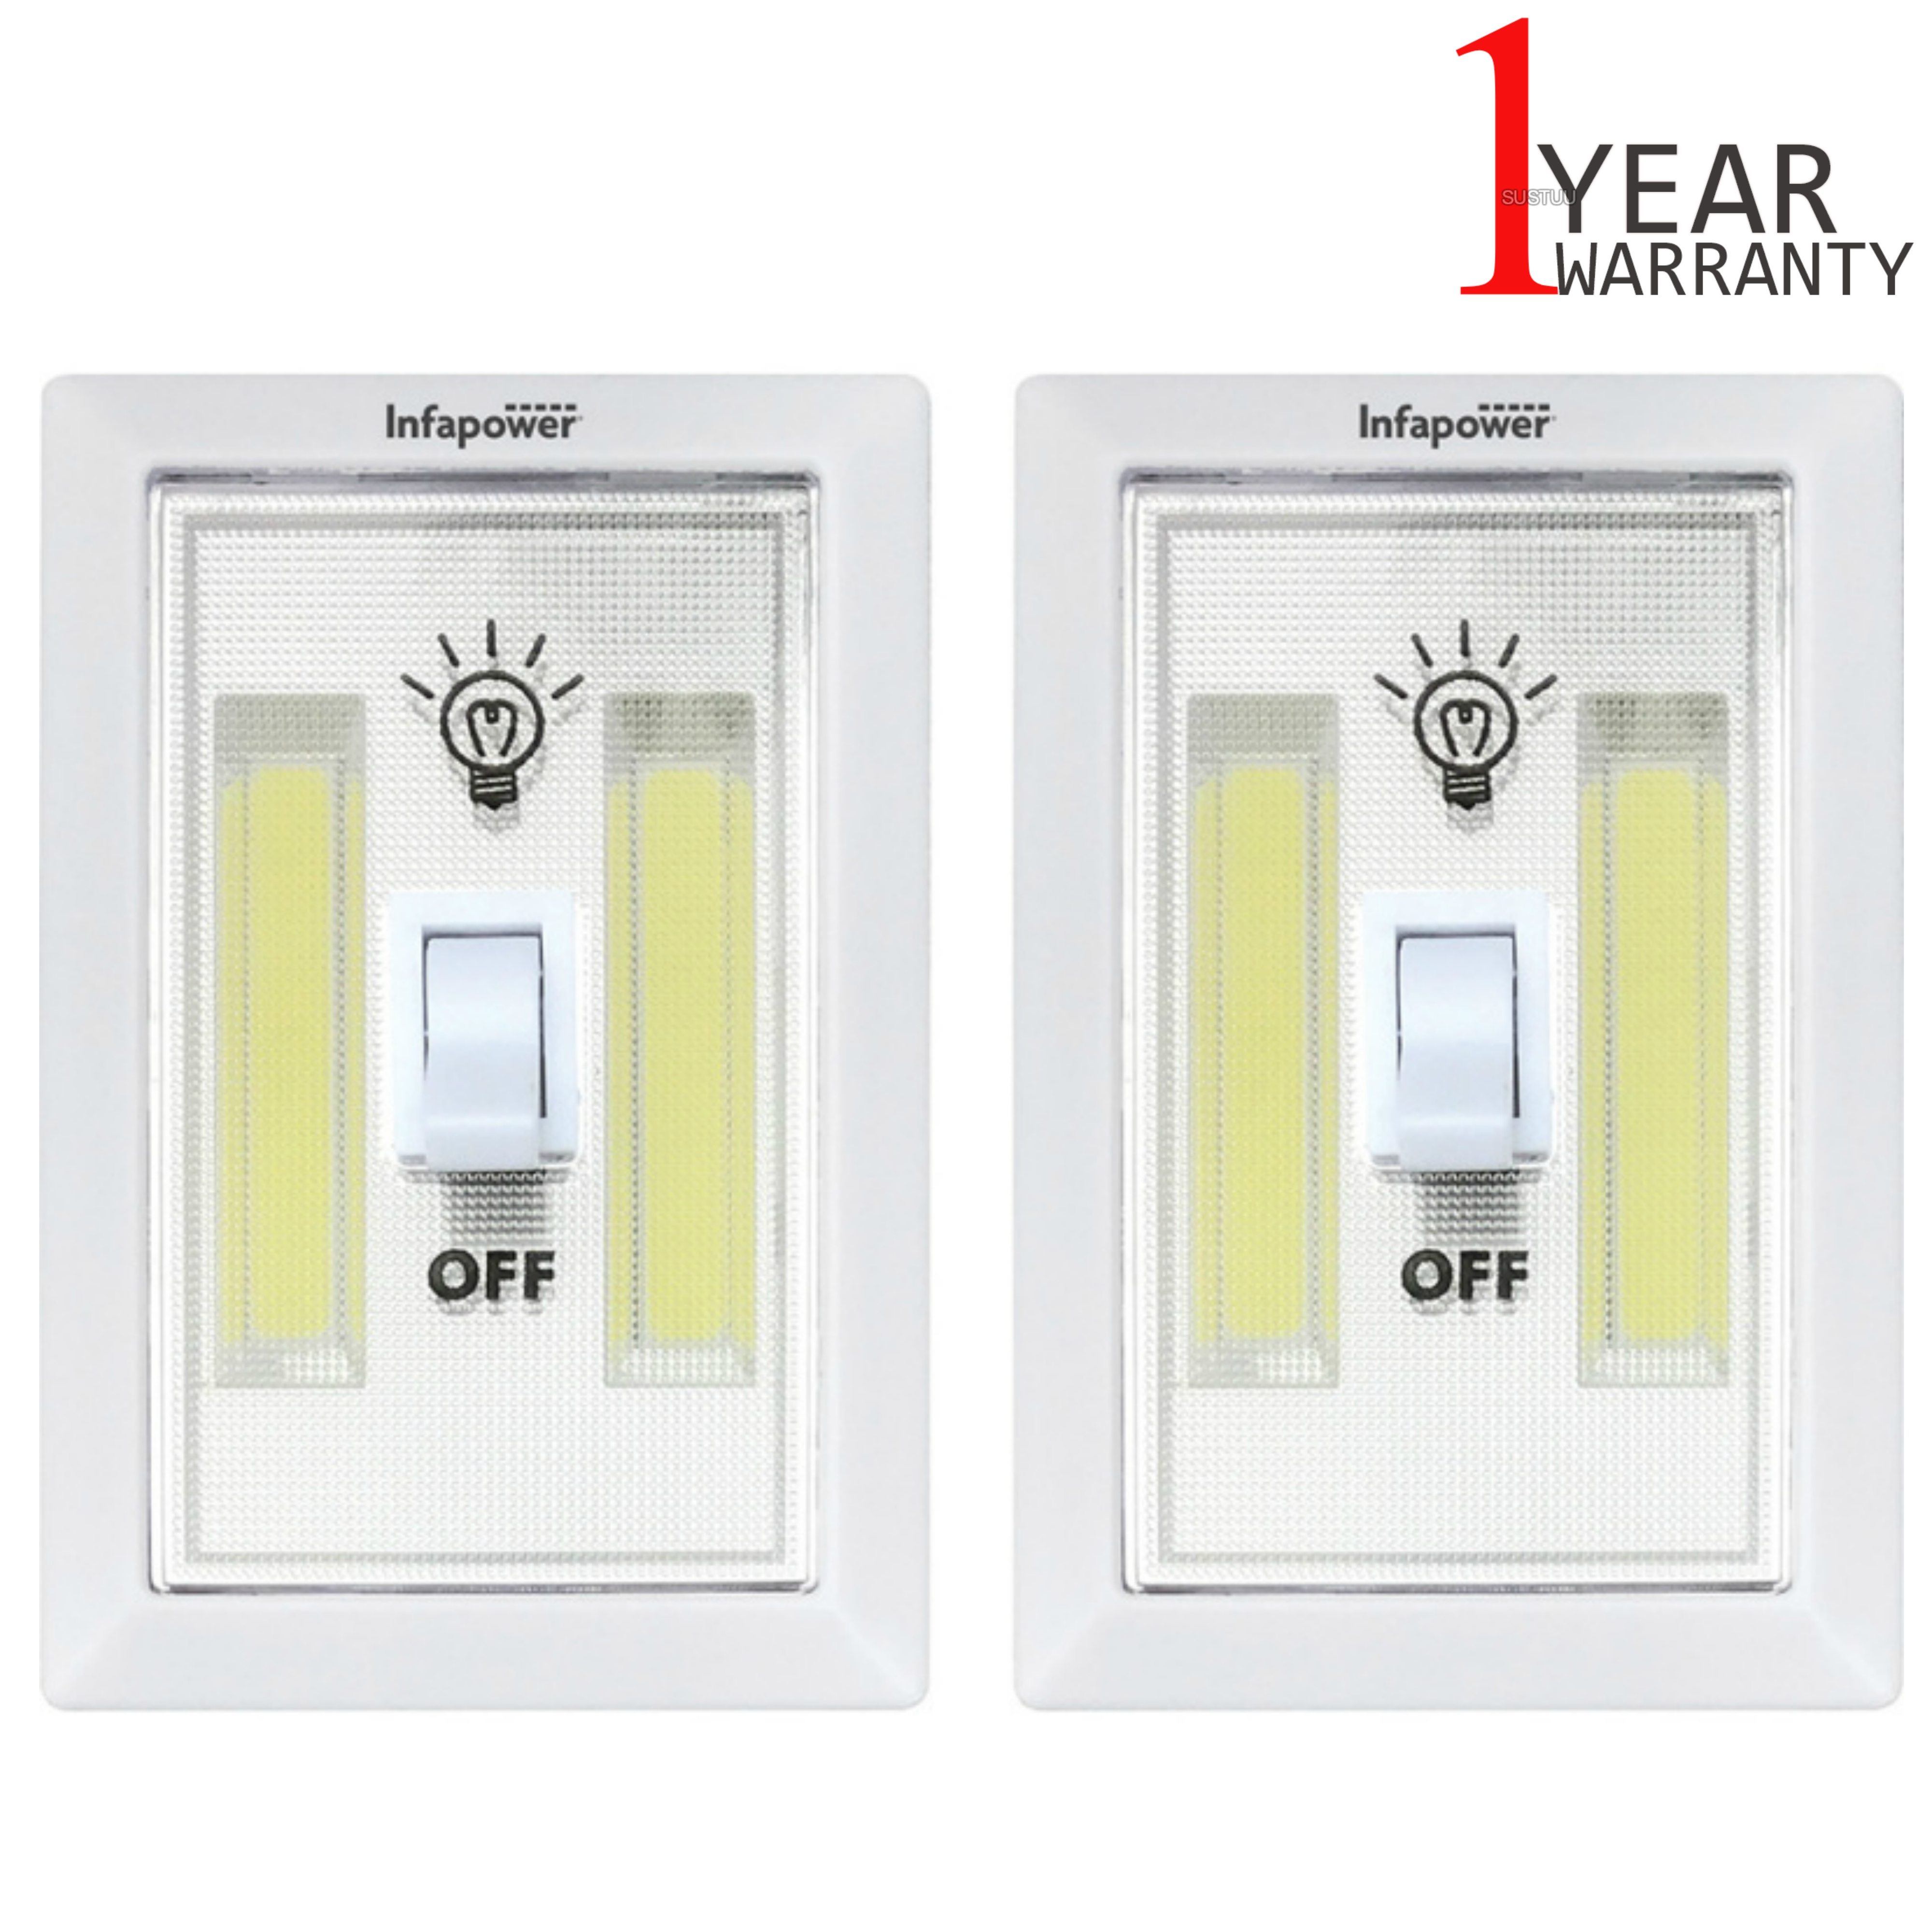 Infapower F043 Twin Pack 3W COB Switch Light | Home-Office-Leisure Use | 180 Lumens |